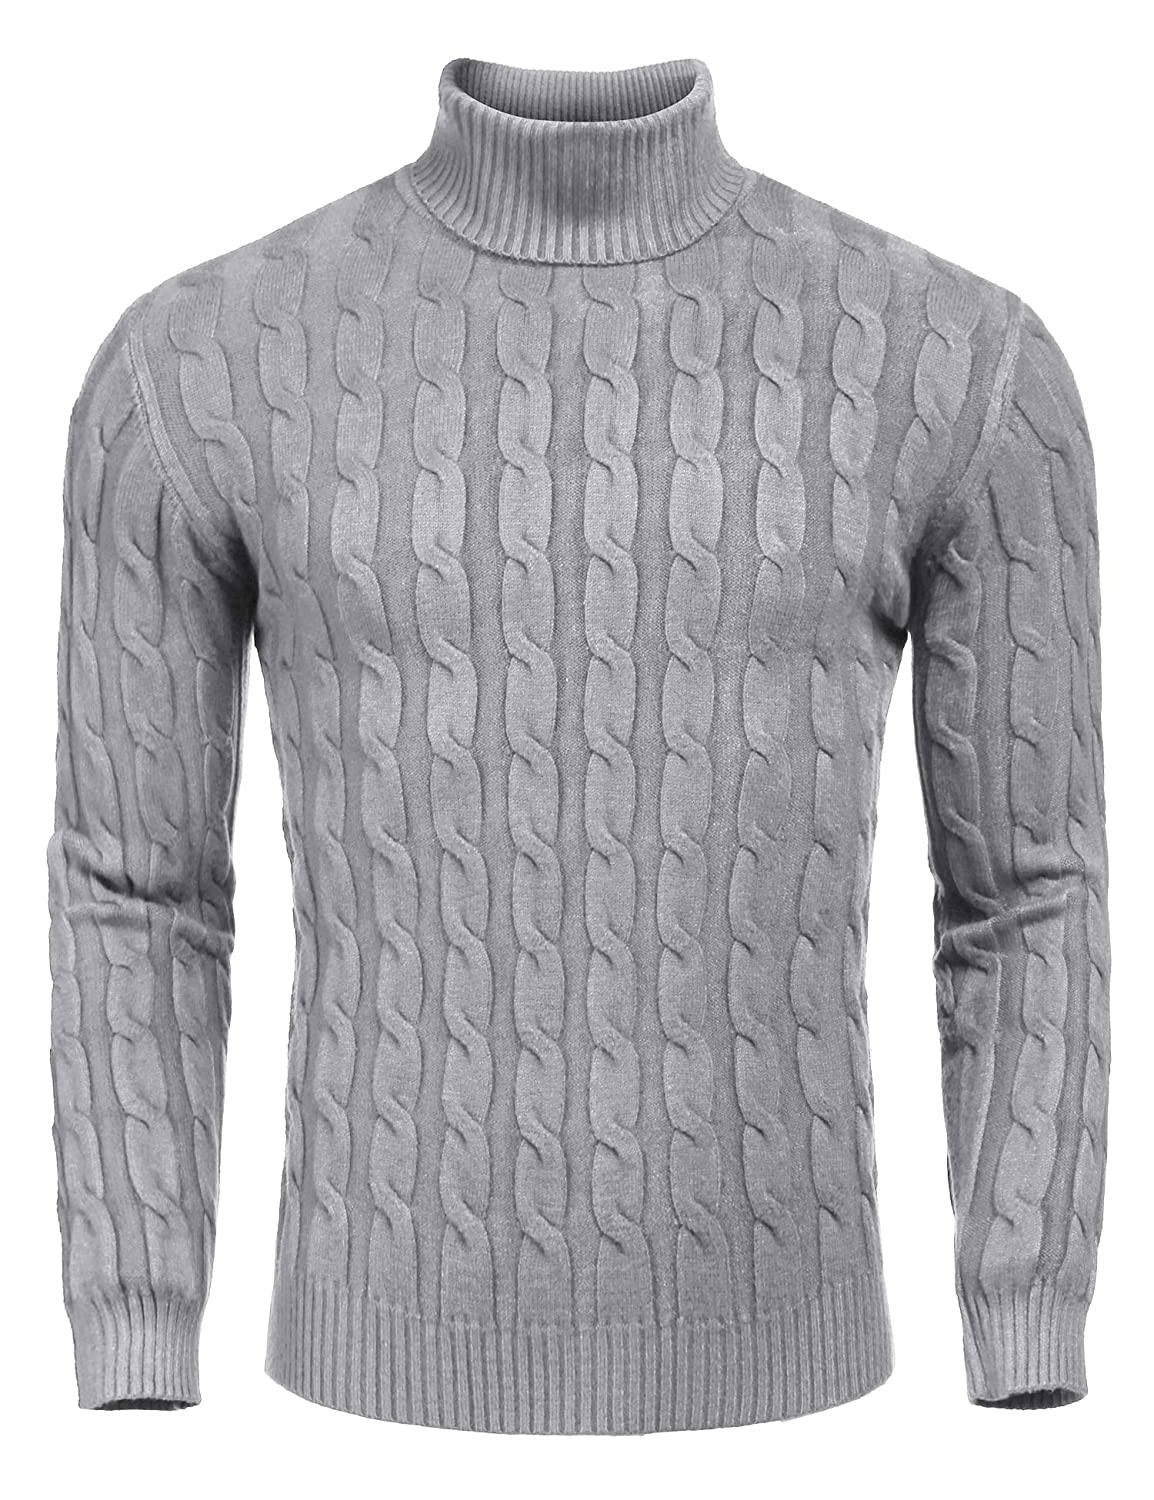 afe140447a With high quality elastic soft fabric and thick material, making you feel  warm and comfortable in the chill days. Premium long sleeve pullover  sweaters ...